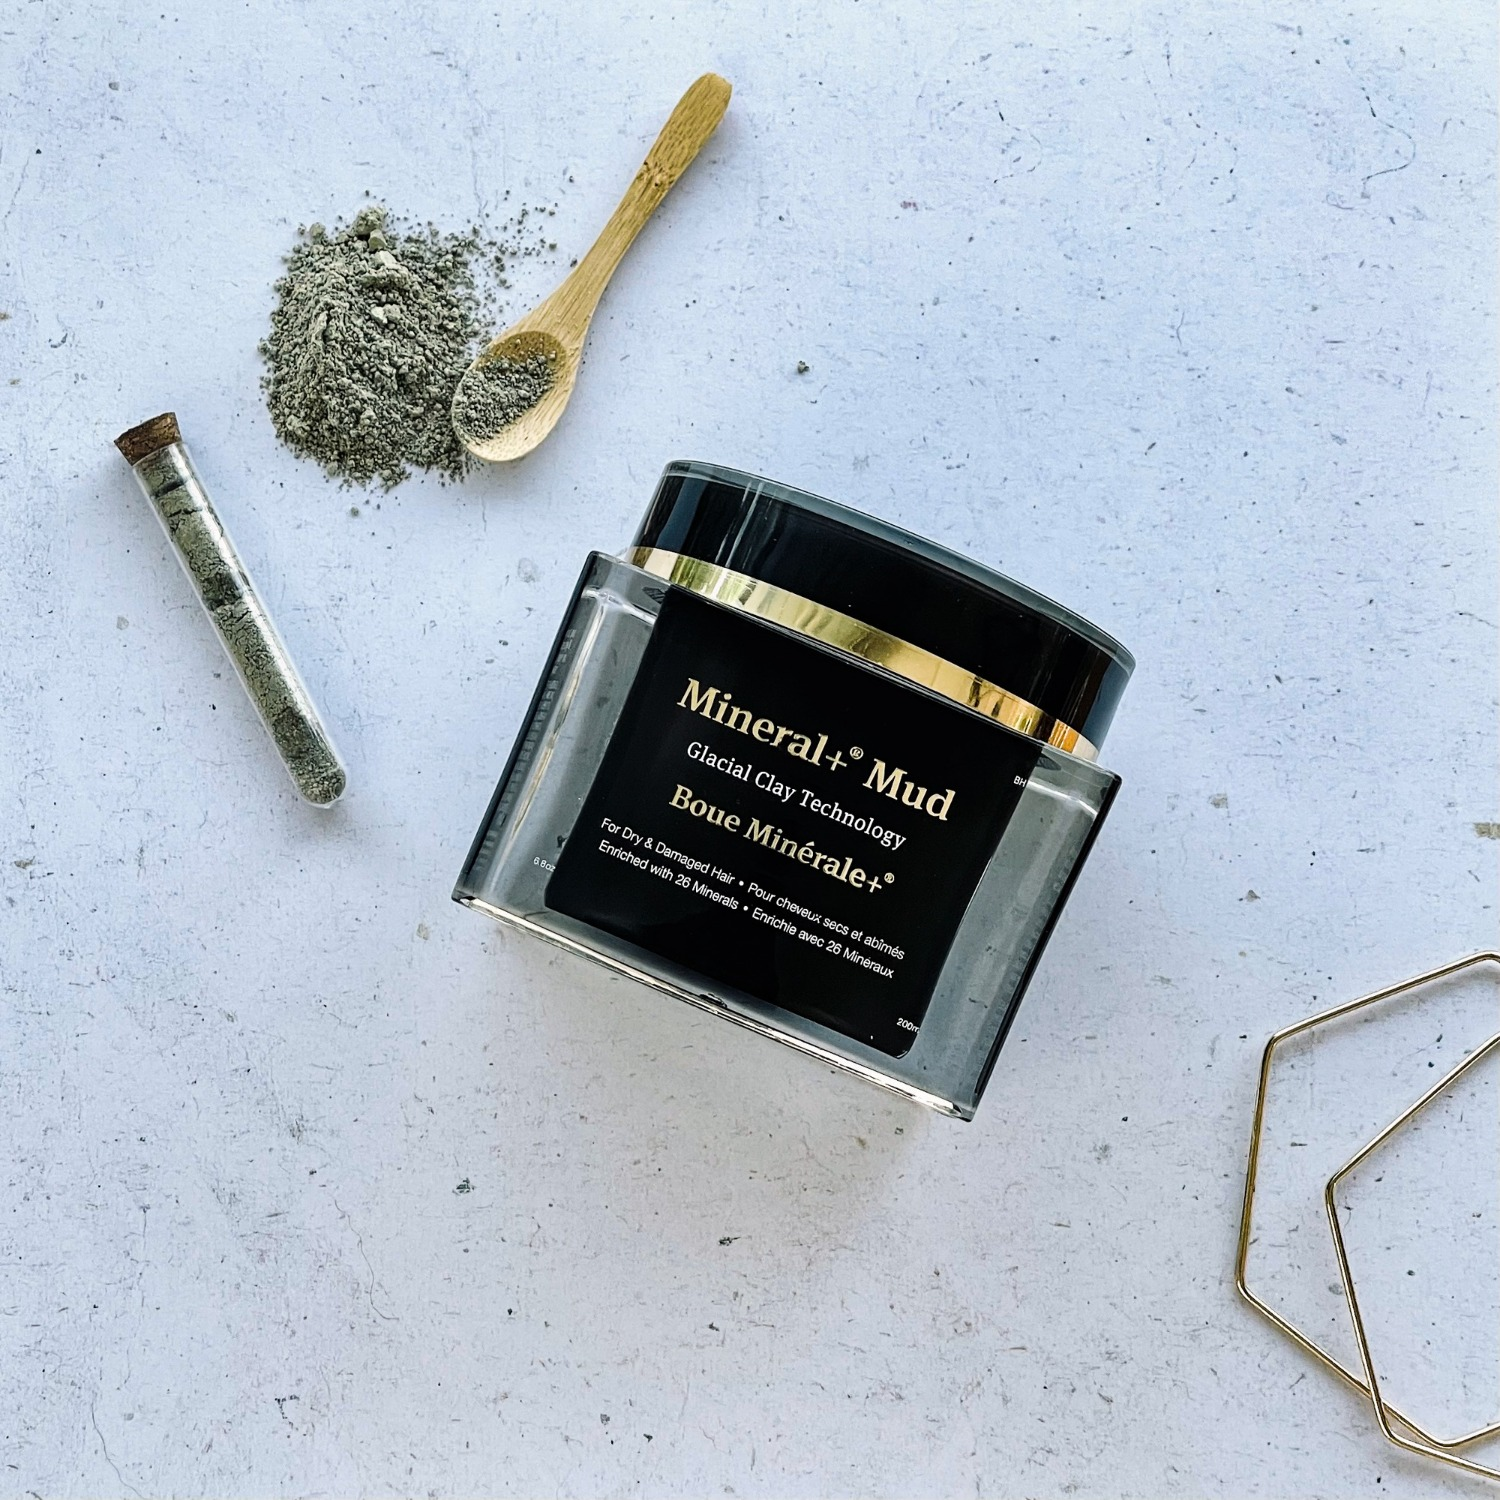 Pure minerals from Glacial Oceanic Clay for hair & skin